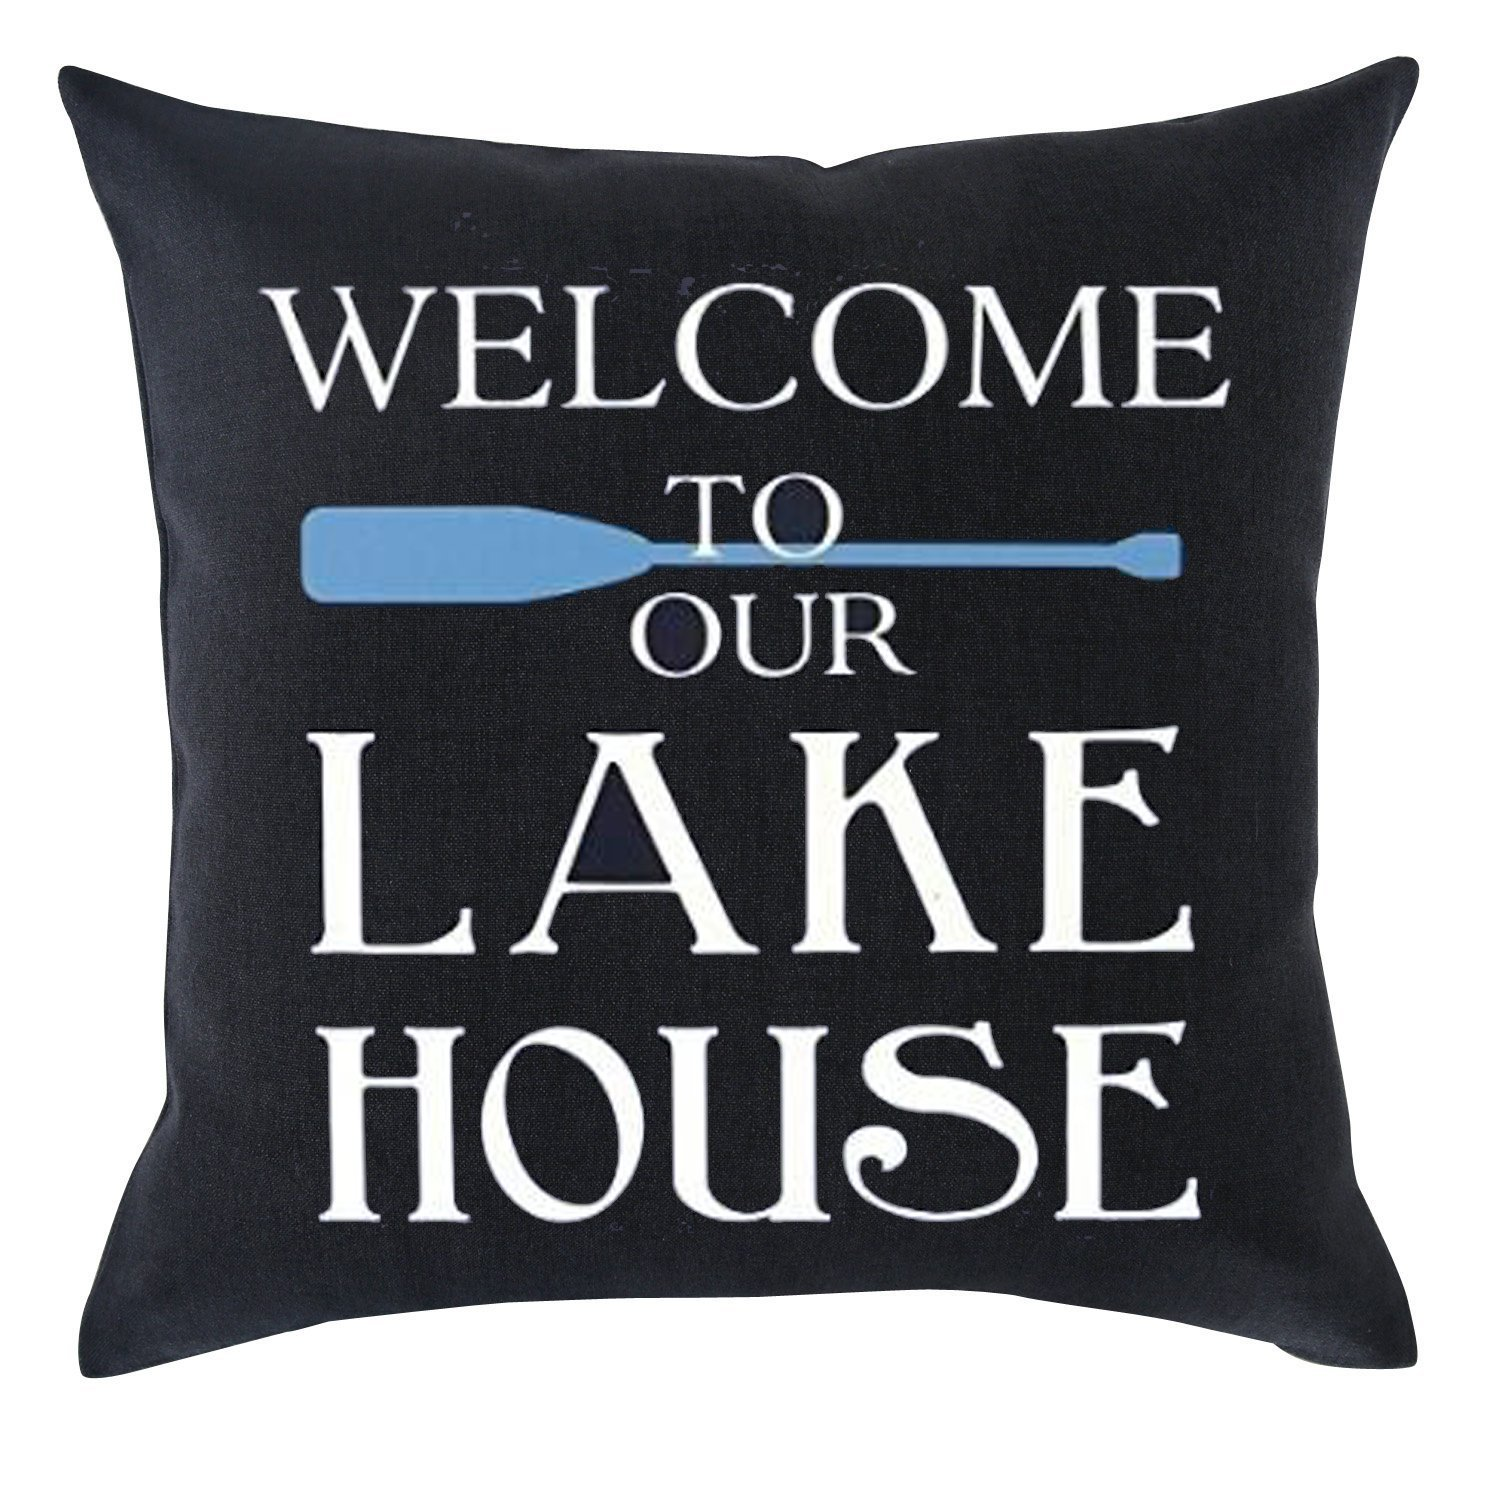 Welcome to Our Lake House Cotton Linen Throw pillow cover Cushion Case Holiday Decorative